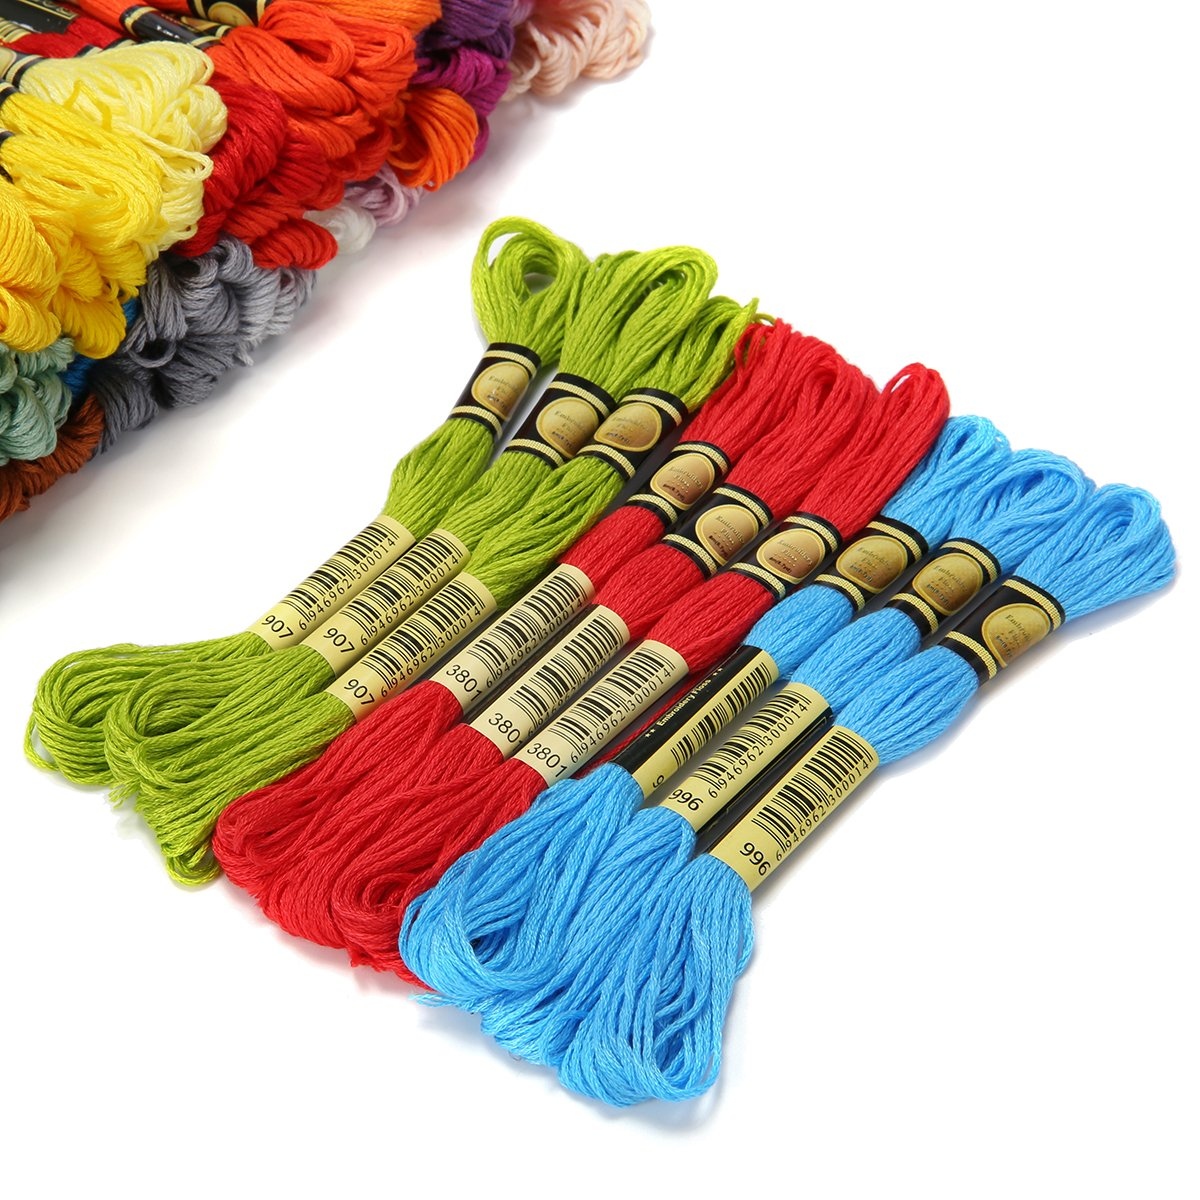 KINGSO Embroidery Floss 105 Skeins Rainbow Color Cross Stitch Thread Bracelets Floss Art Craft with Embroidery Needle Threading Tools